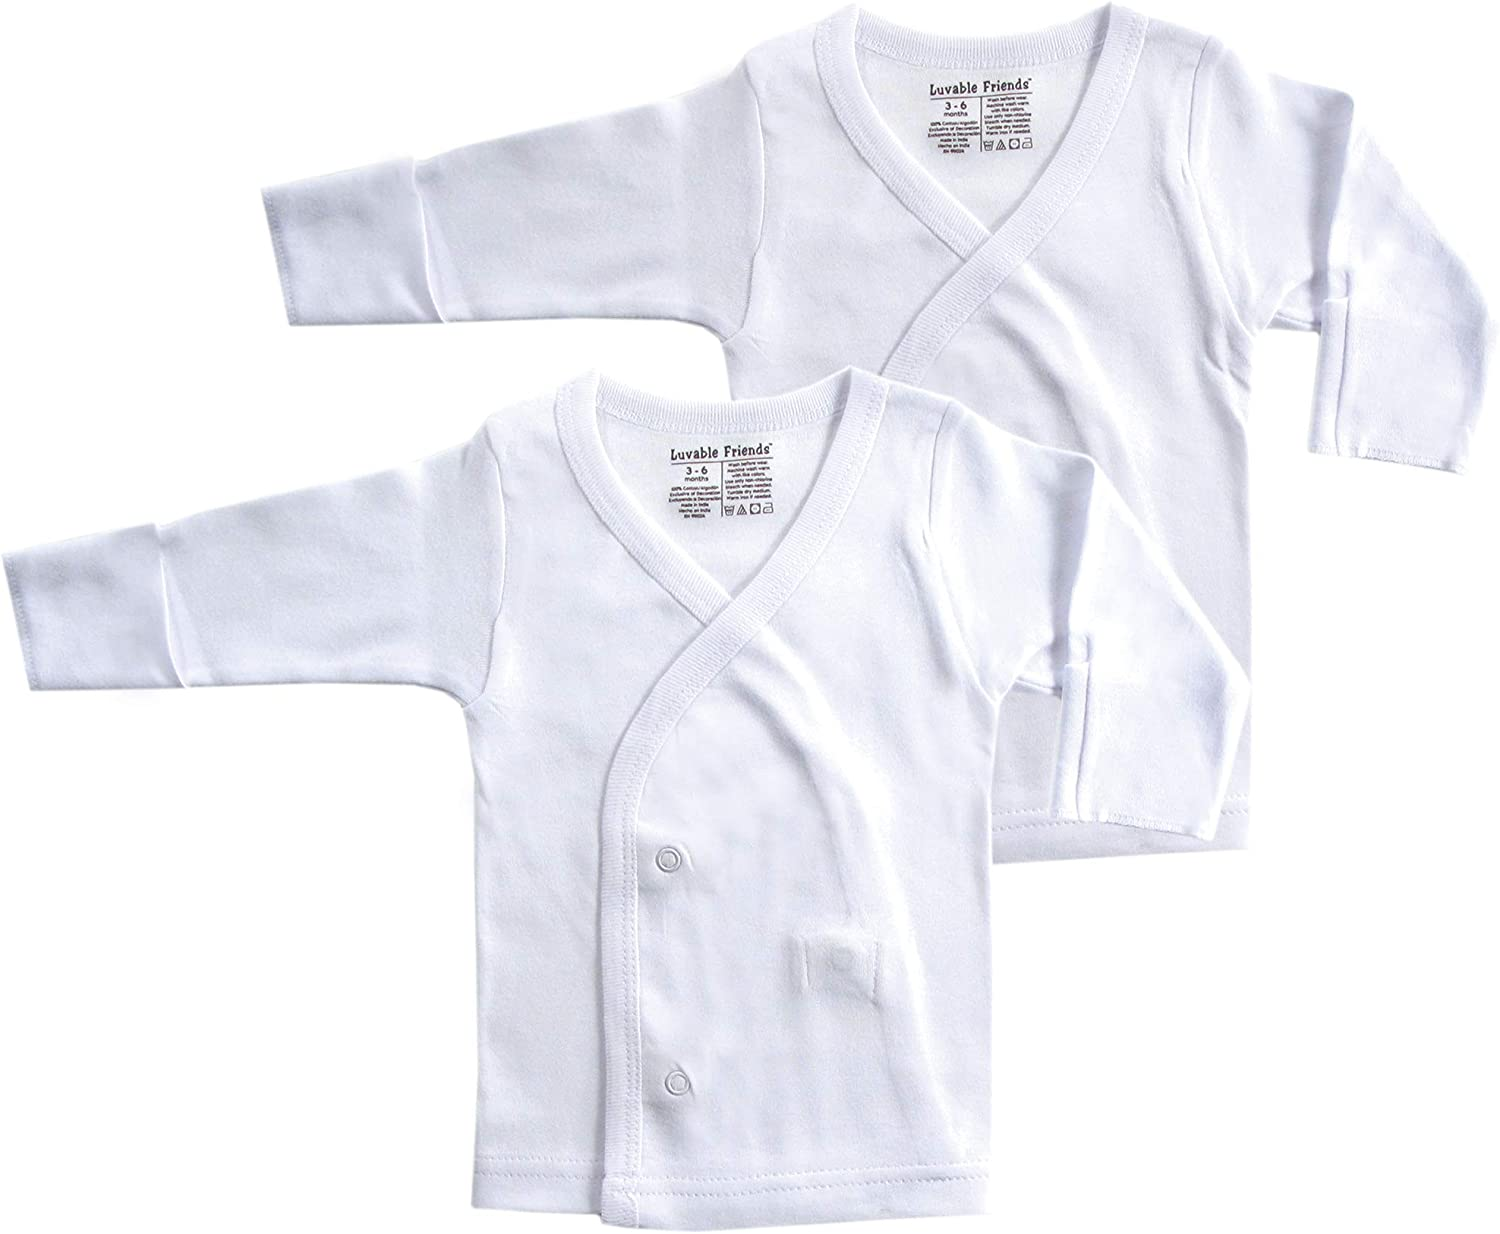 Luvable Friends Baby Side Snap Shirts